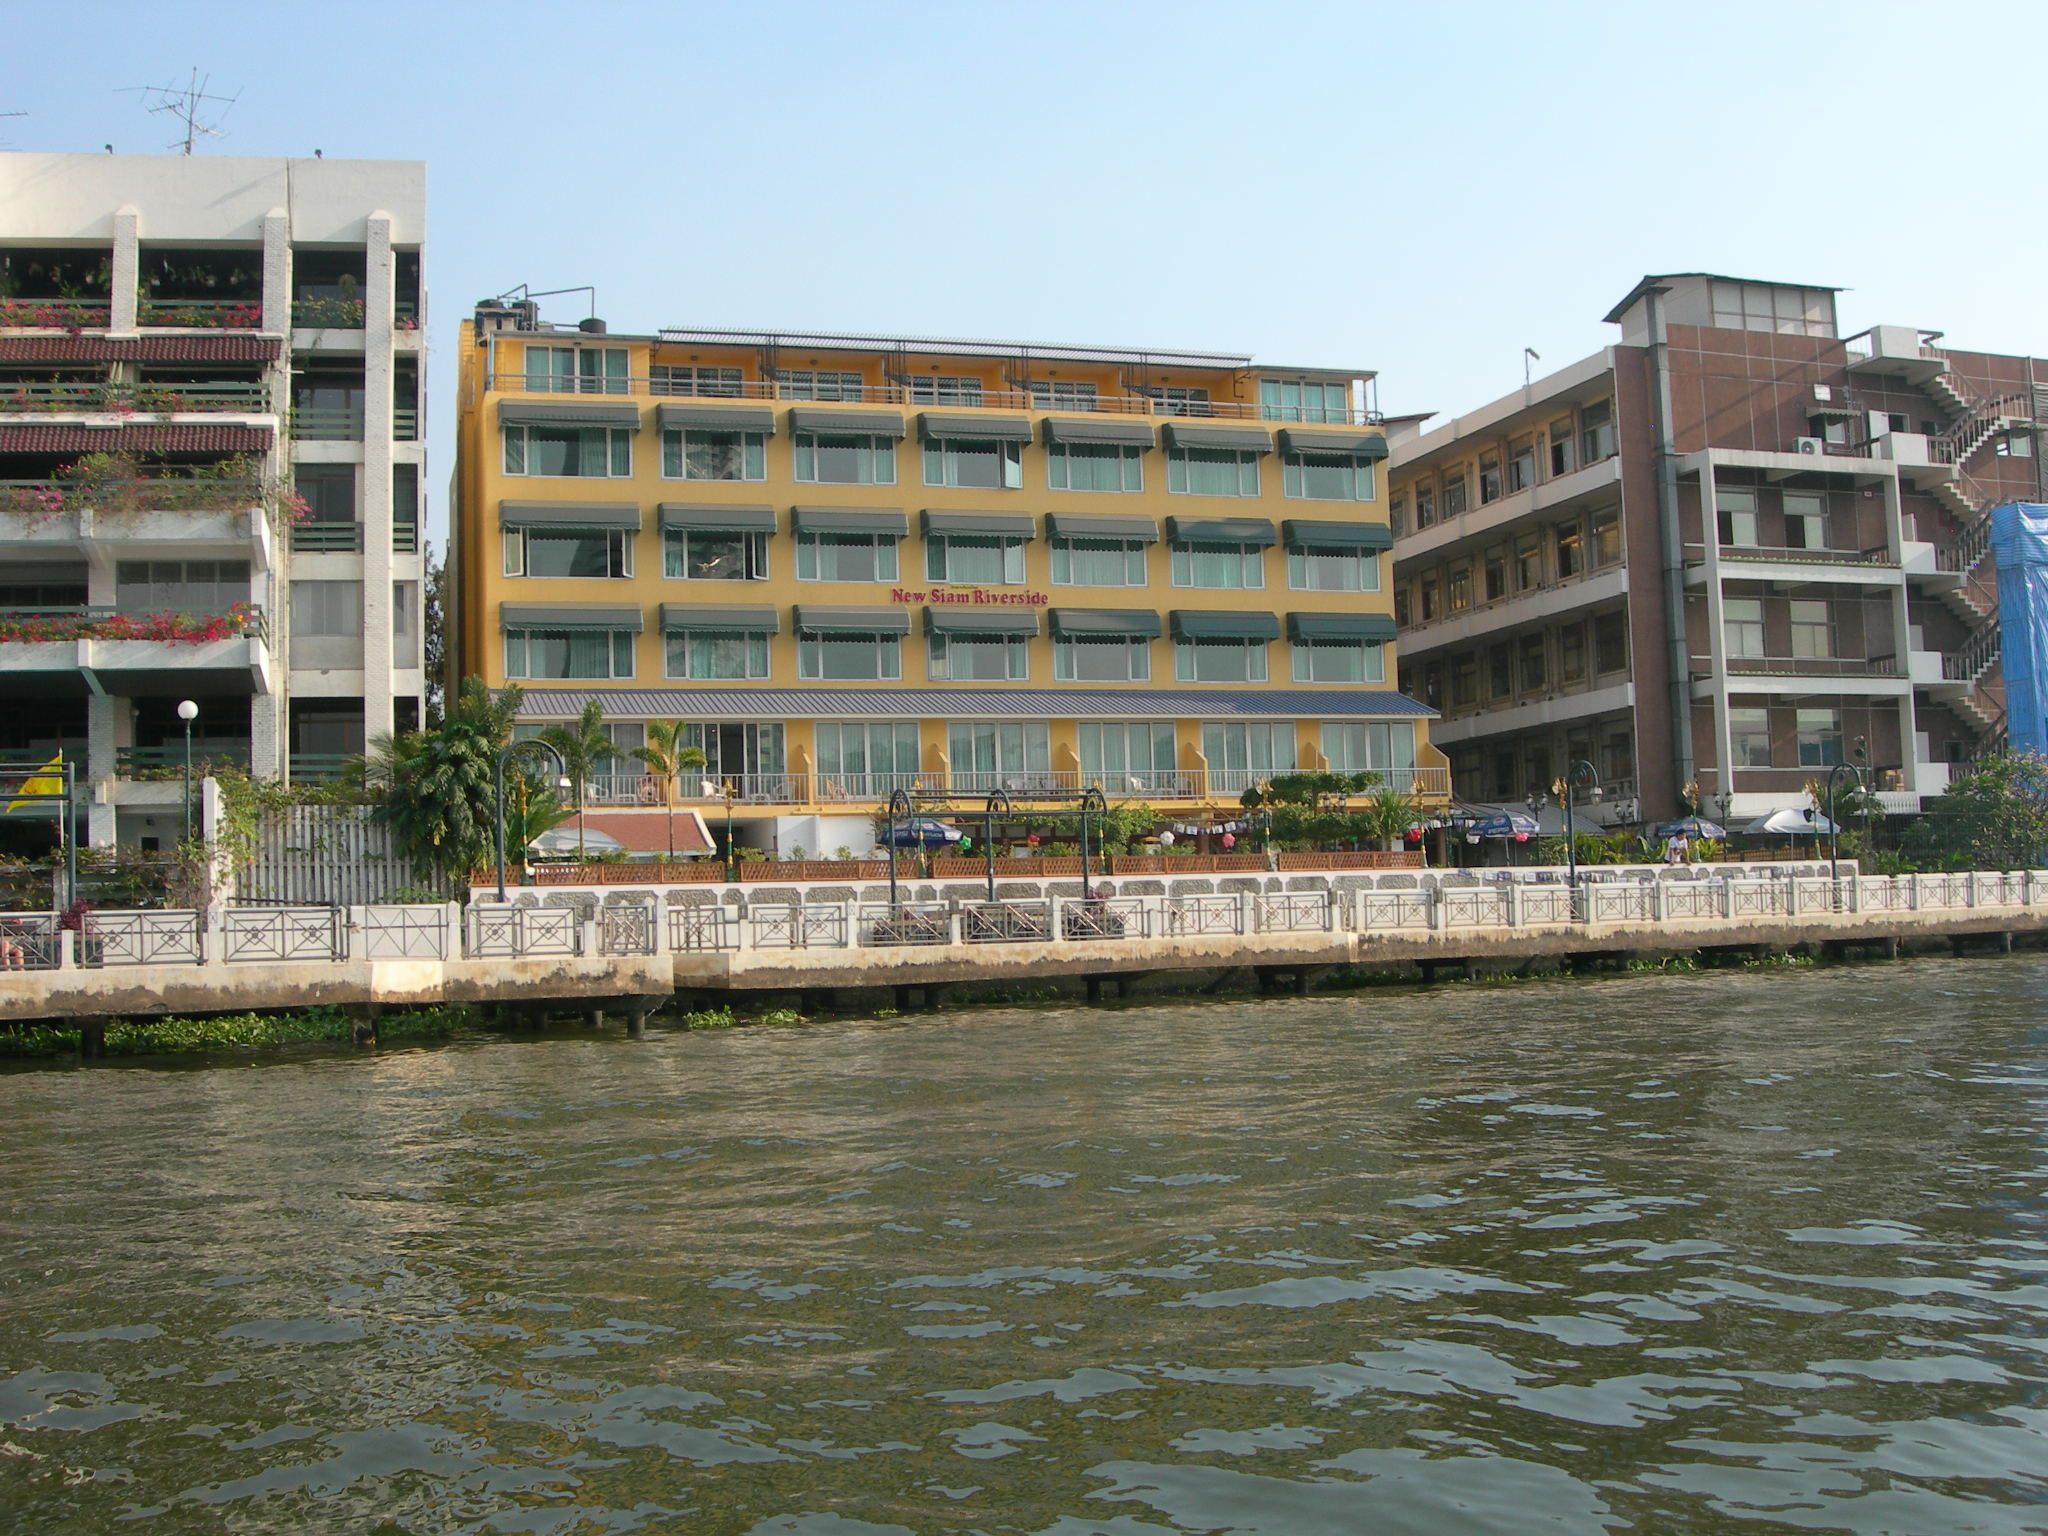 New Siam Riverside Guest House